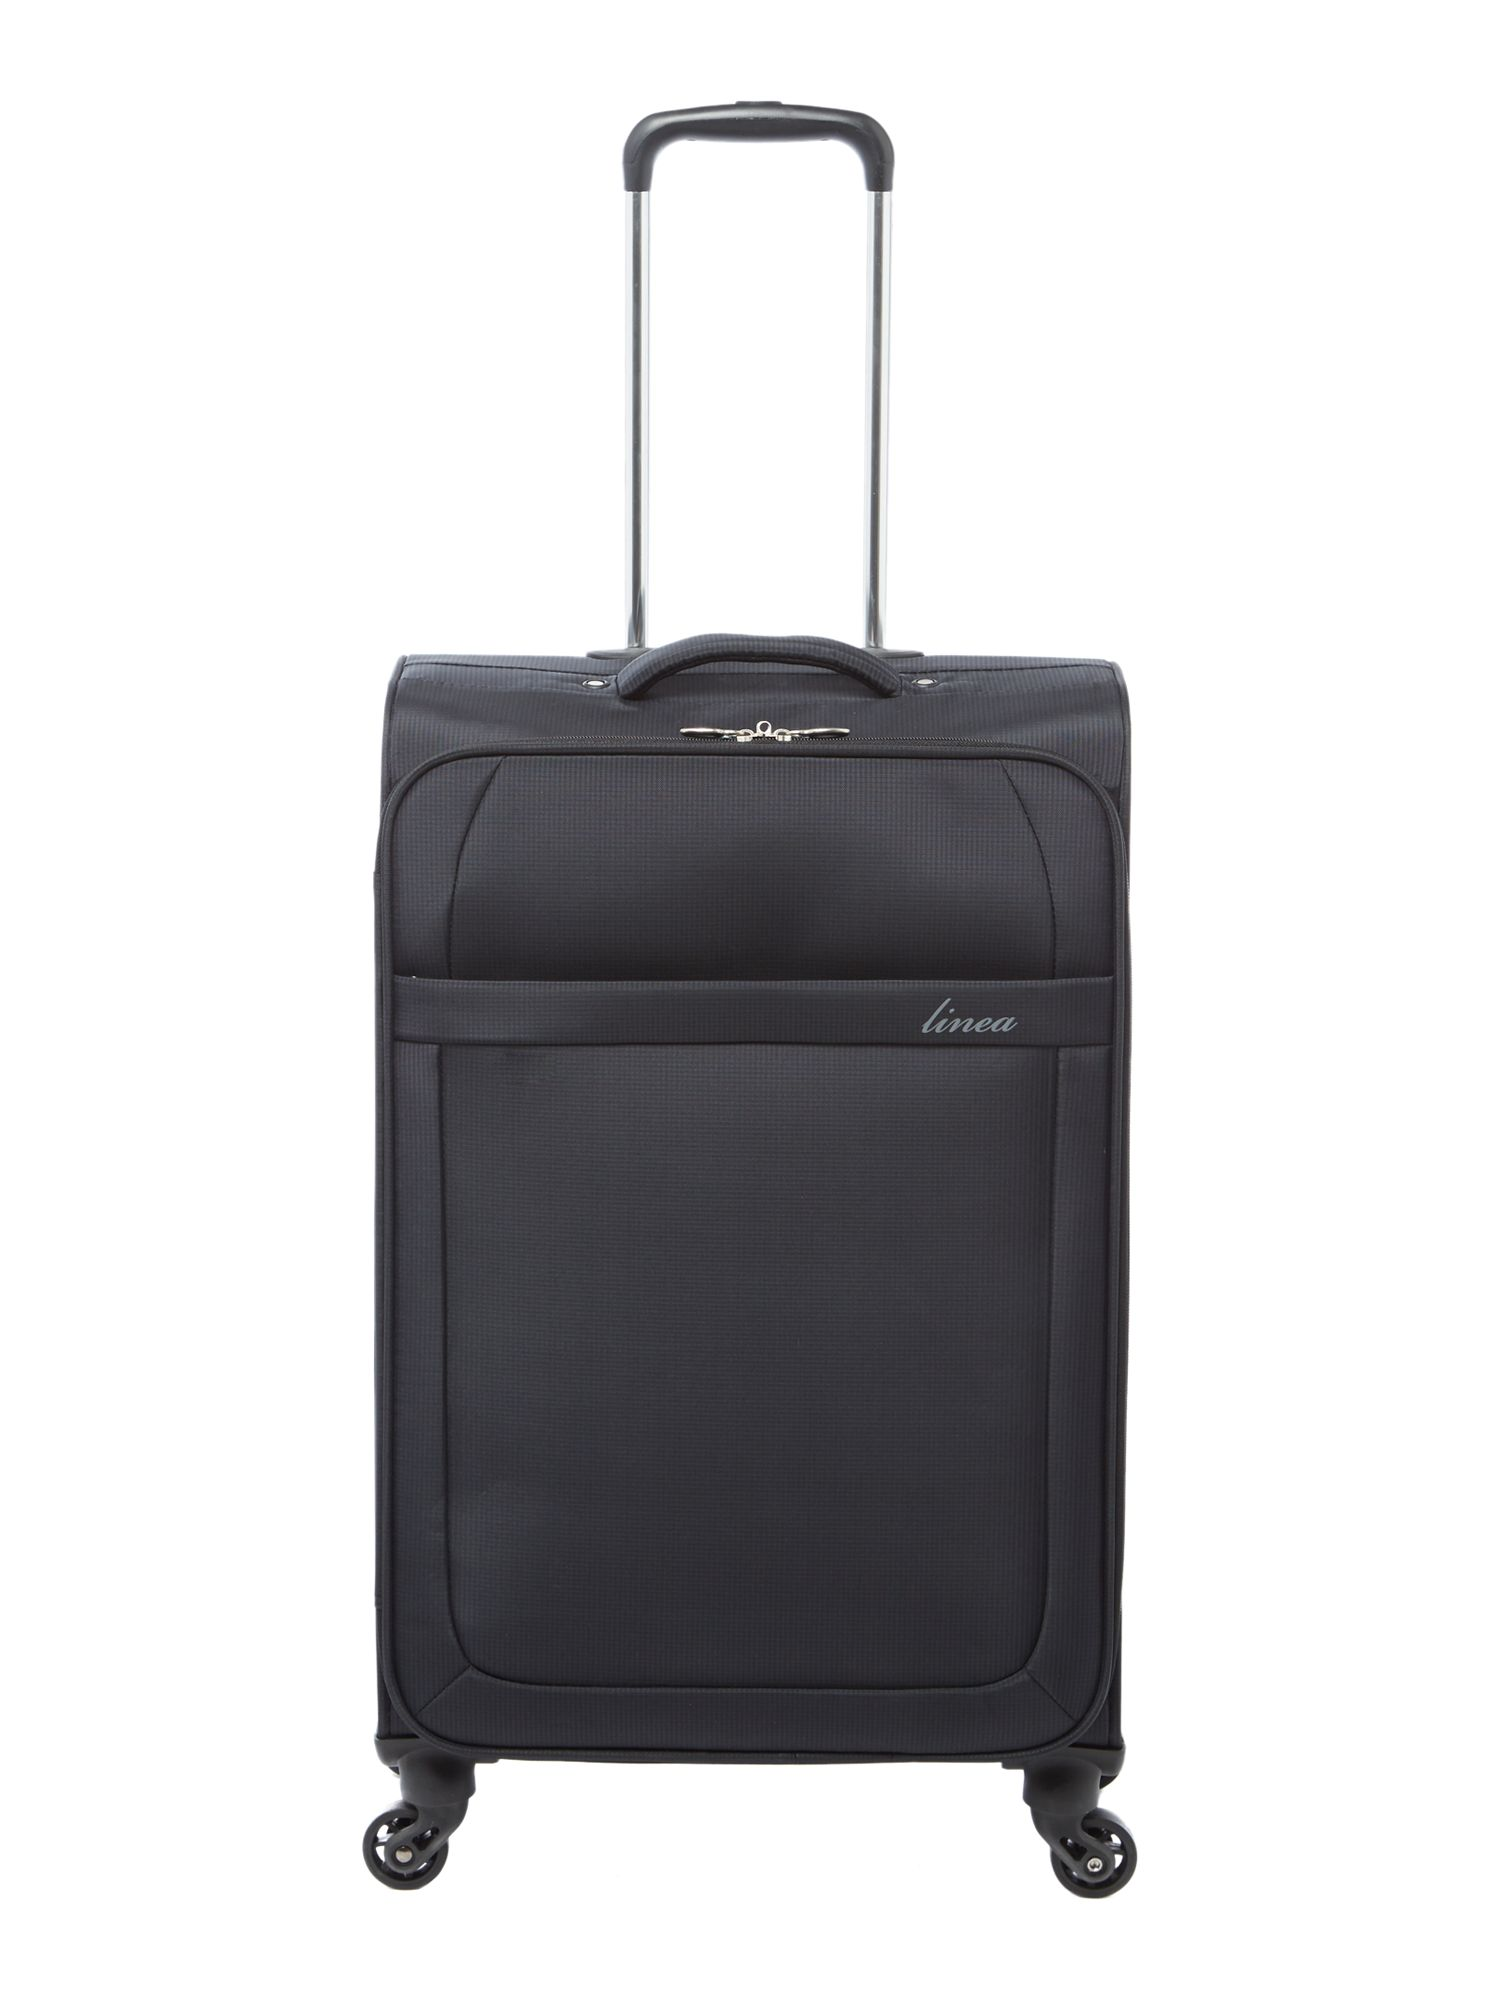 Linea Airlite black 4 wheel soft medium suitcase, Black